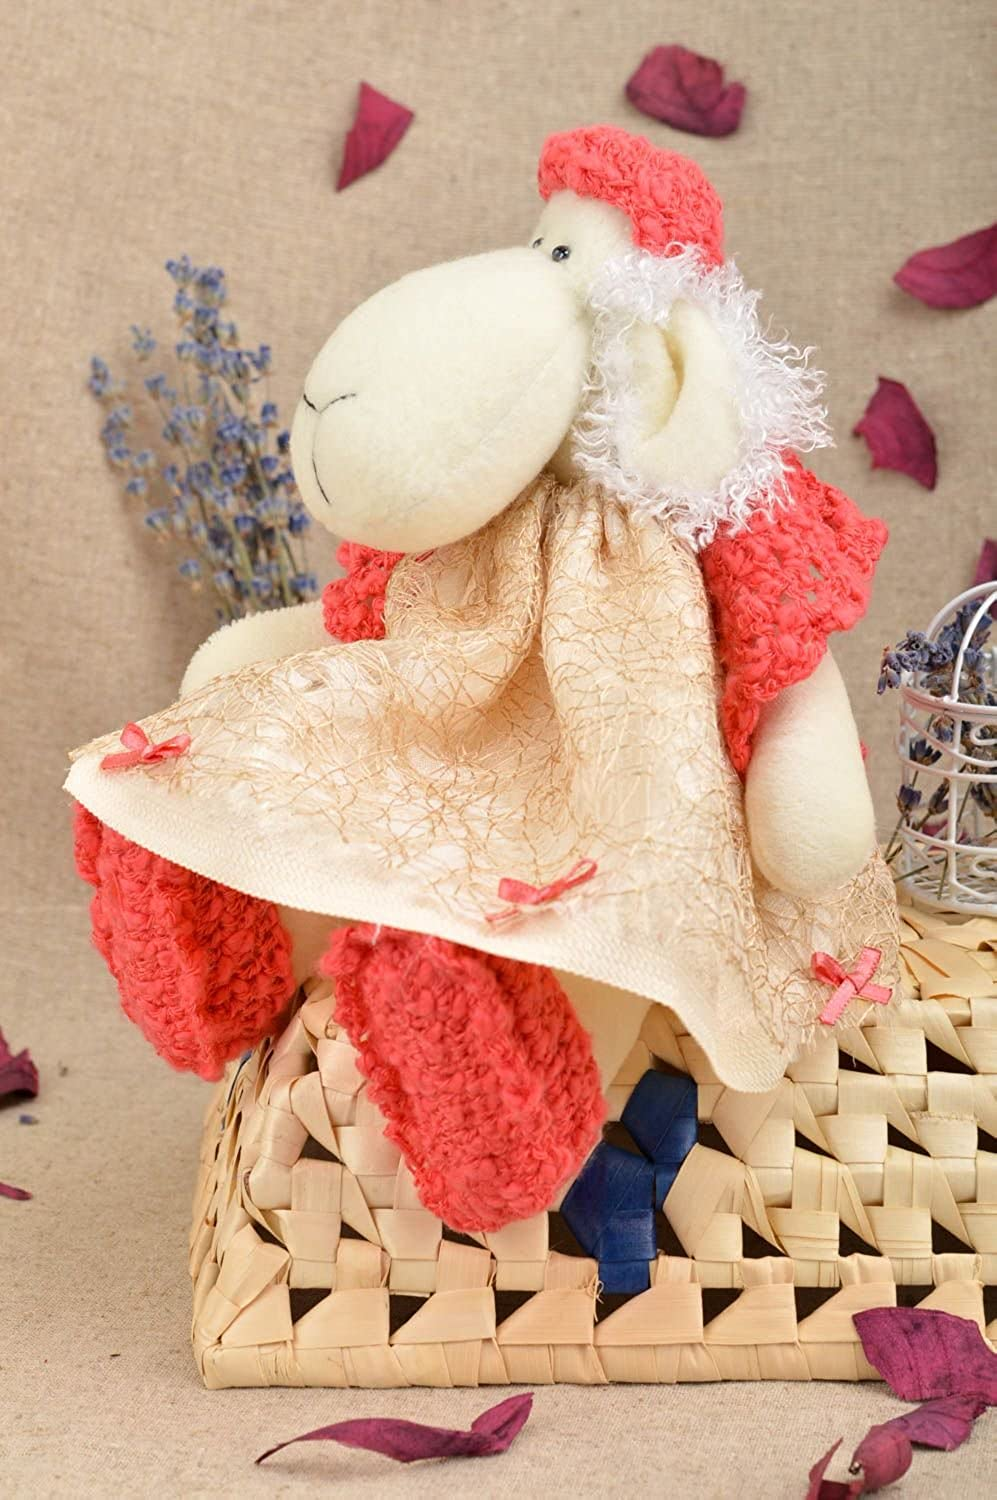 Handmade Soft Toy Collectible Toys Interior Decorating Decorative use only